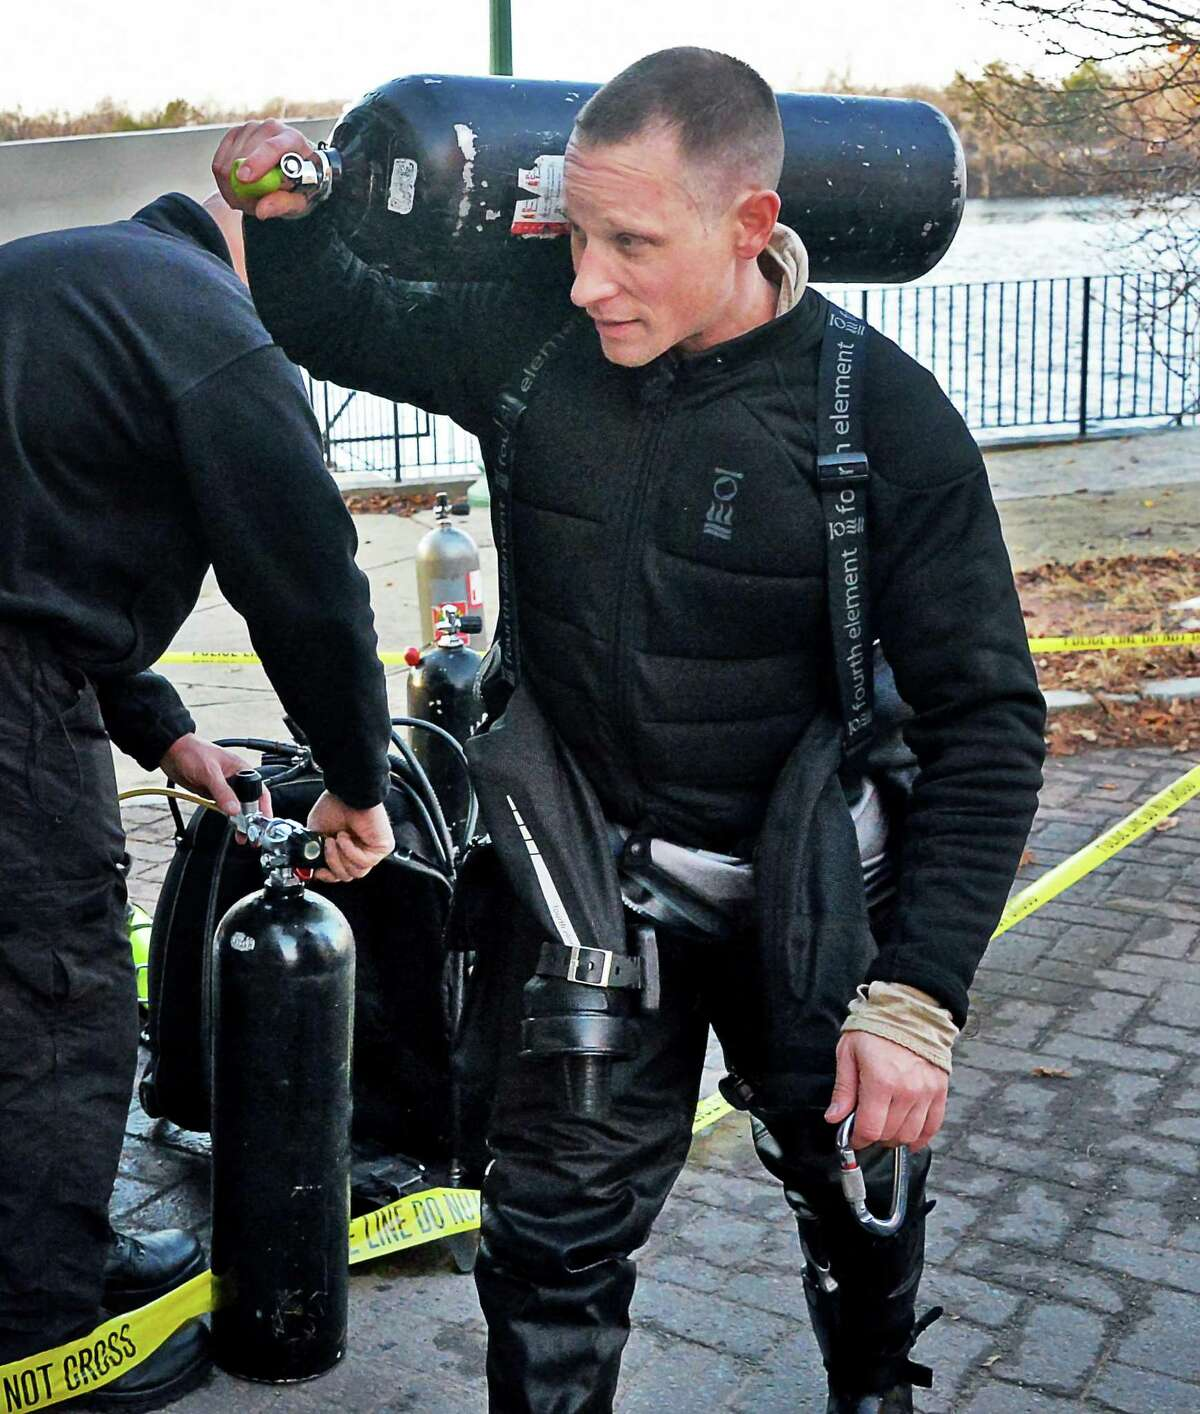 A fresh dive tank in hand, New York State Trooper Josh Cross returns to the search of the Hudson River for Noel Alkaramla Friday Dec. 11, 2015 in Troy, NY. (John Carl D'Annibale / Times Union)